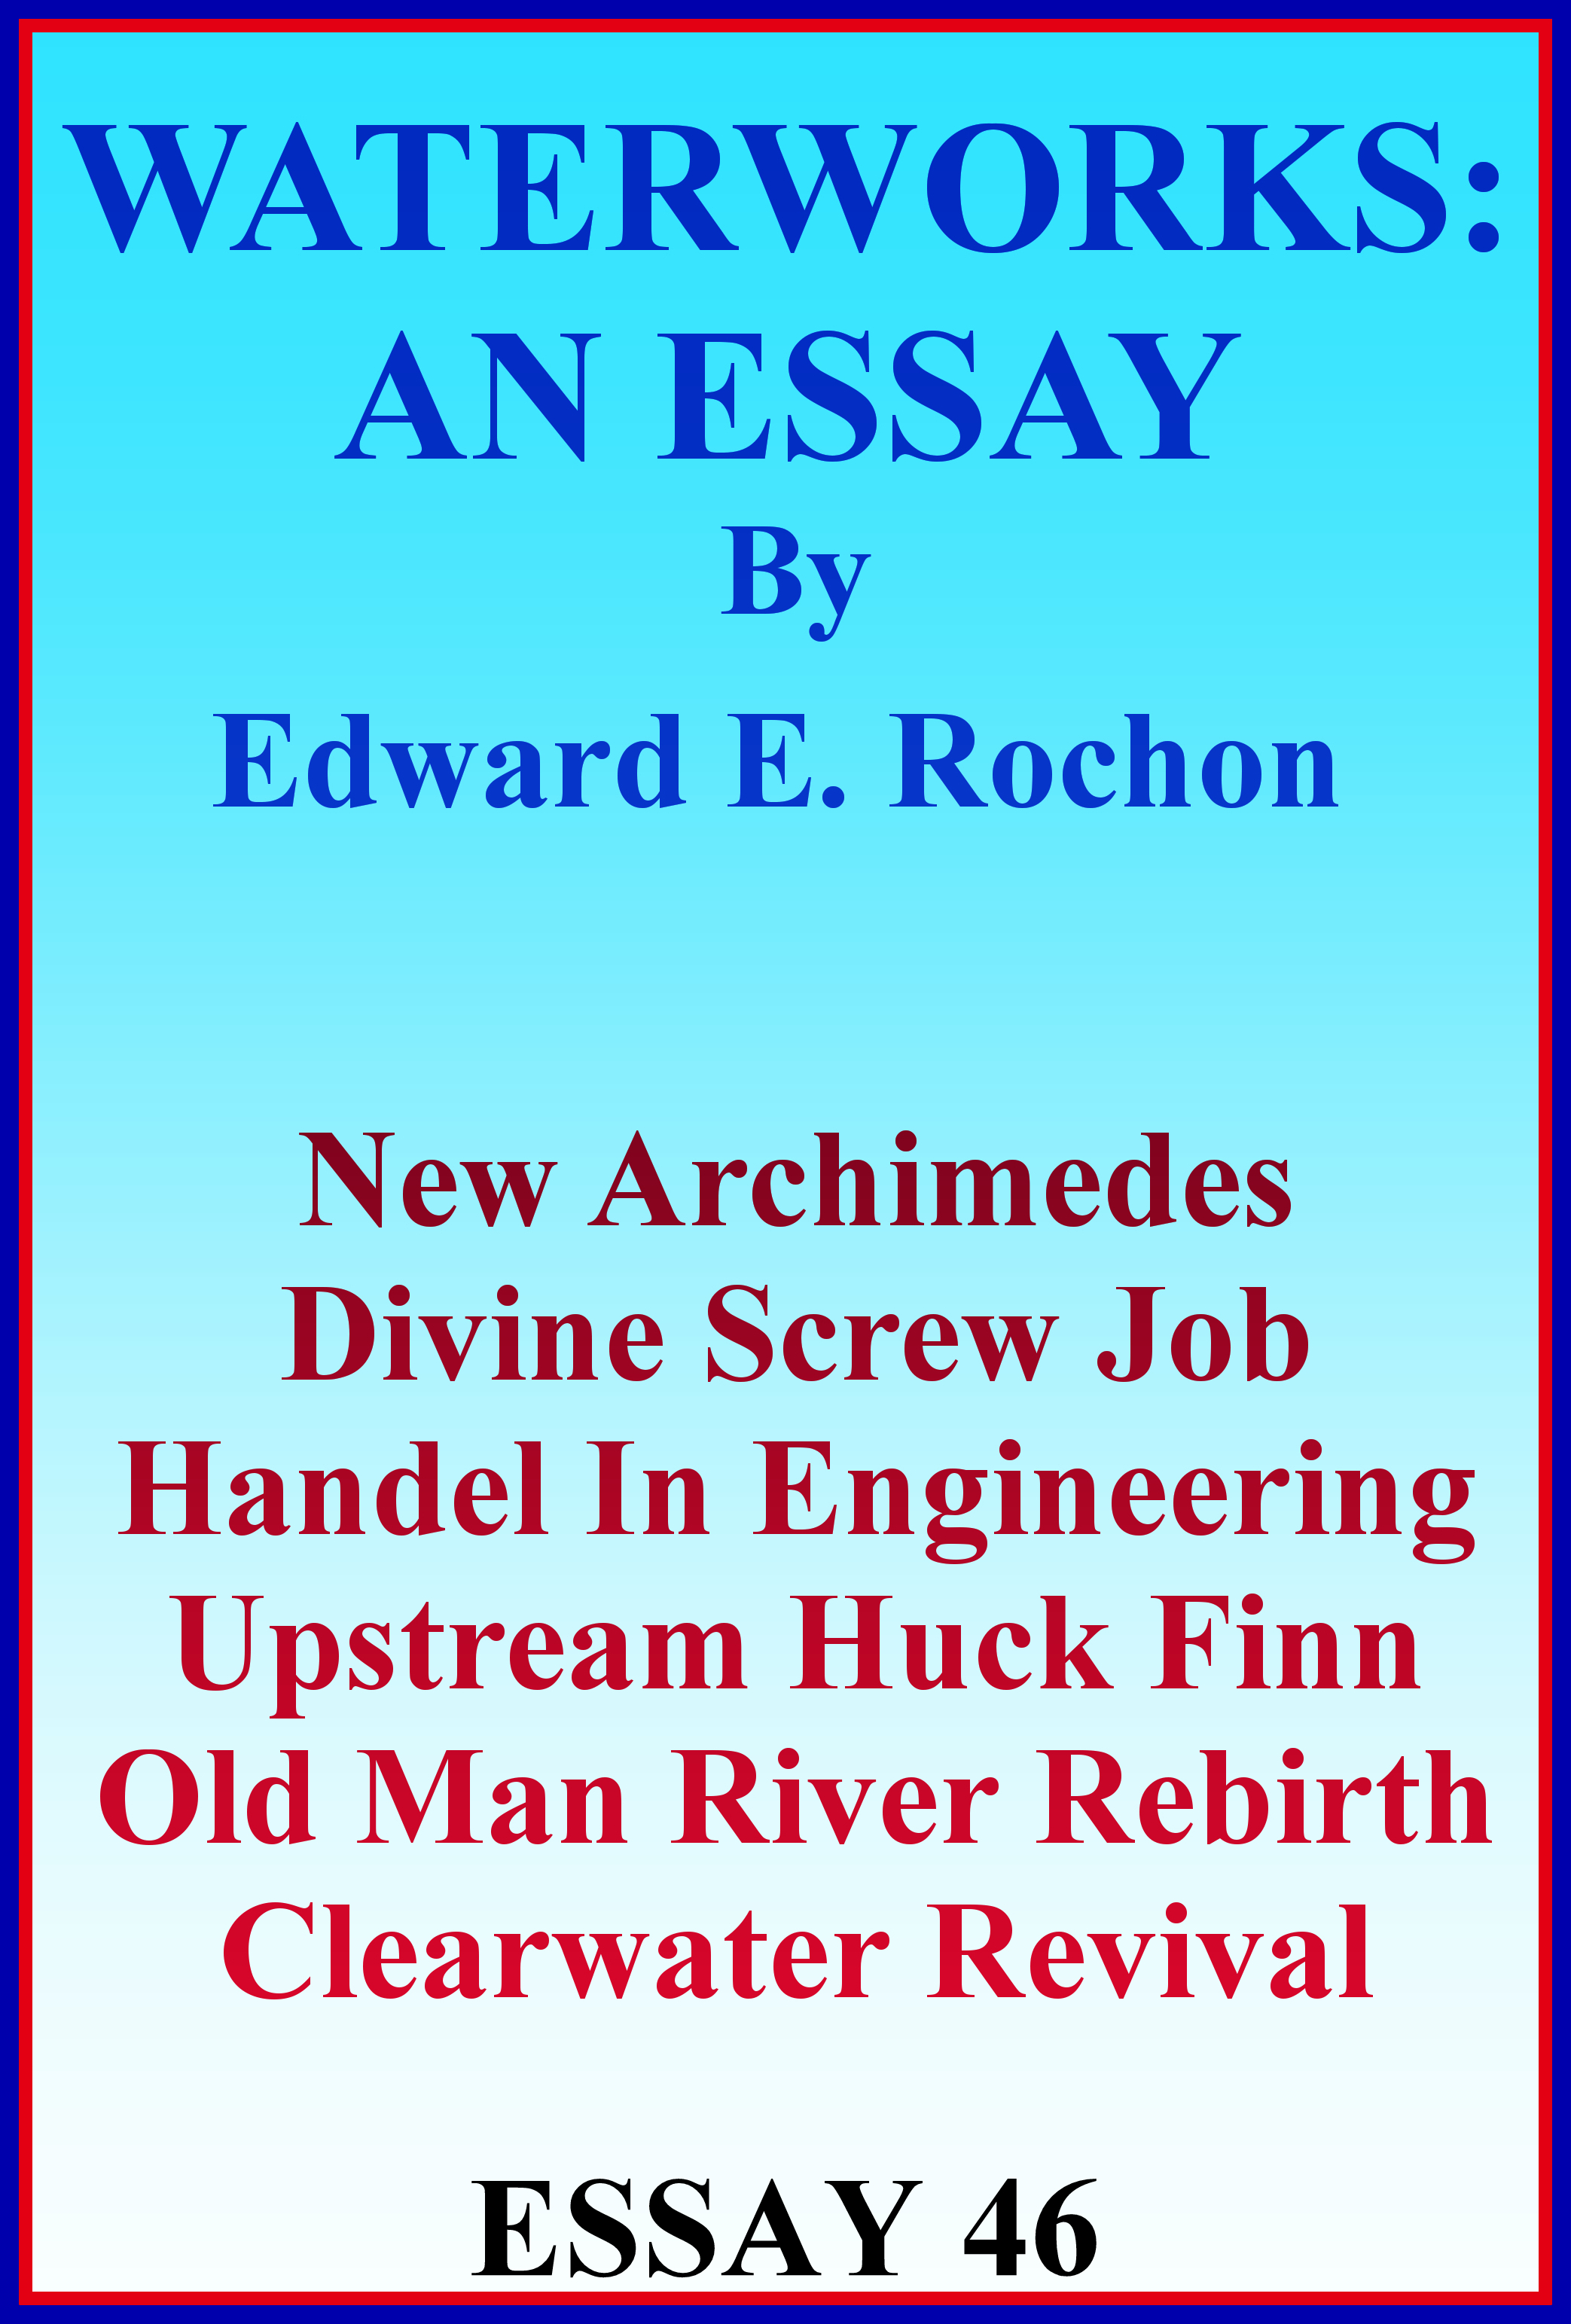 Archimedes essay